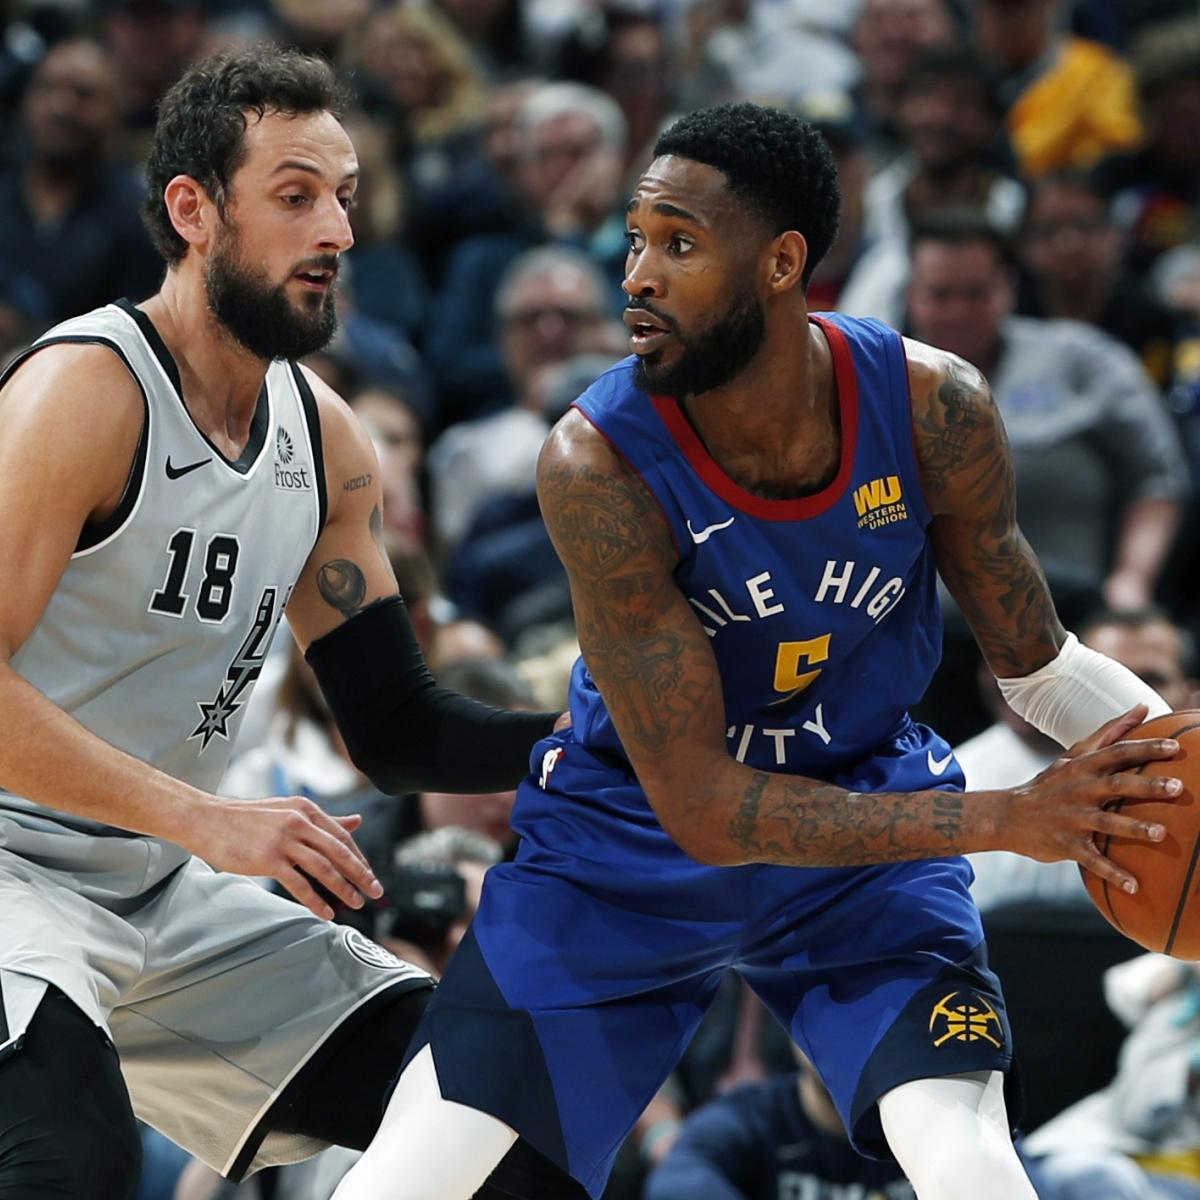 Denver Nuggets Vs Golden State Warriors Game 6 Score: NBA Playoff Schedule 2019: TV, Live-Stream Guide For